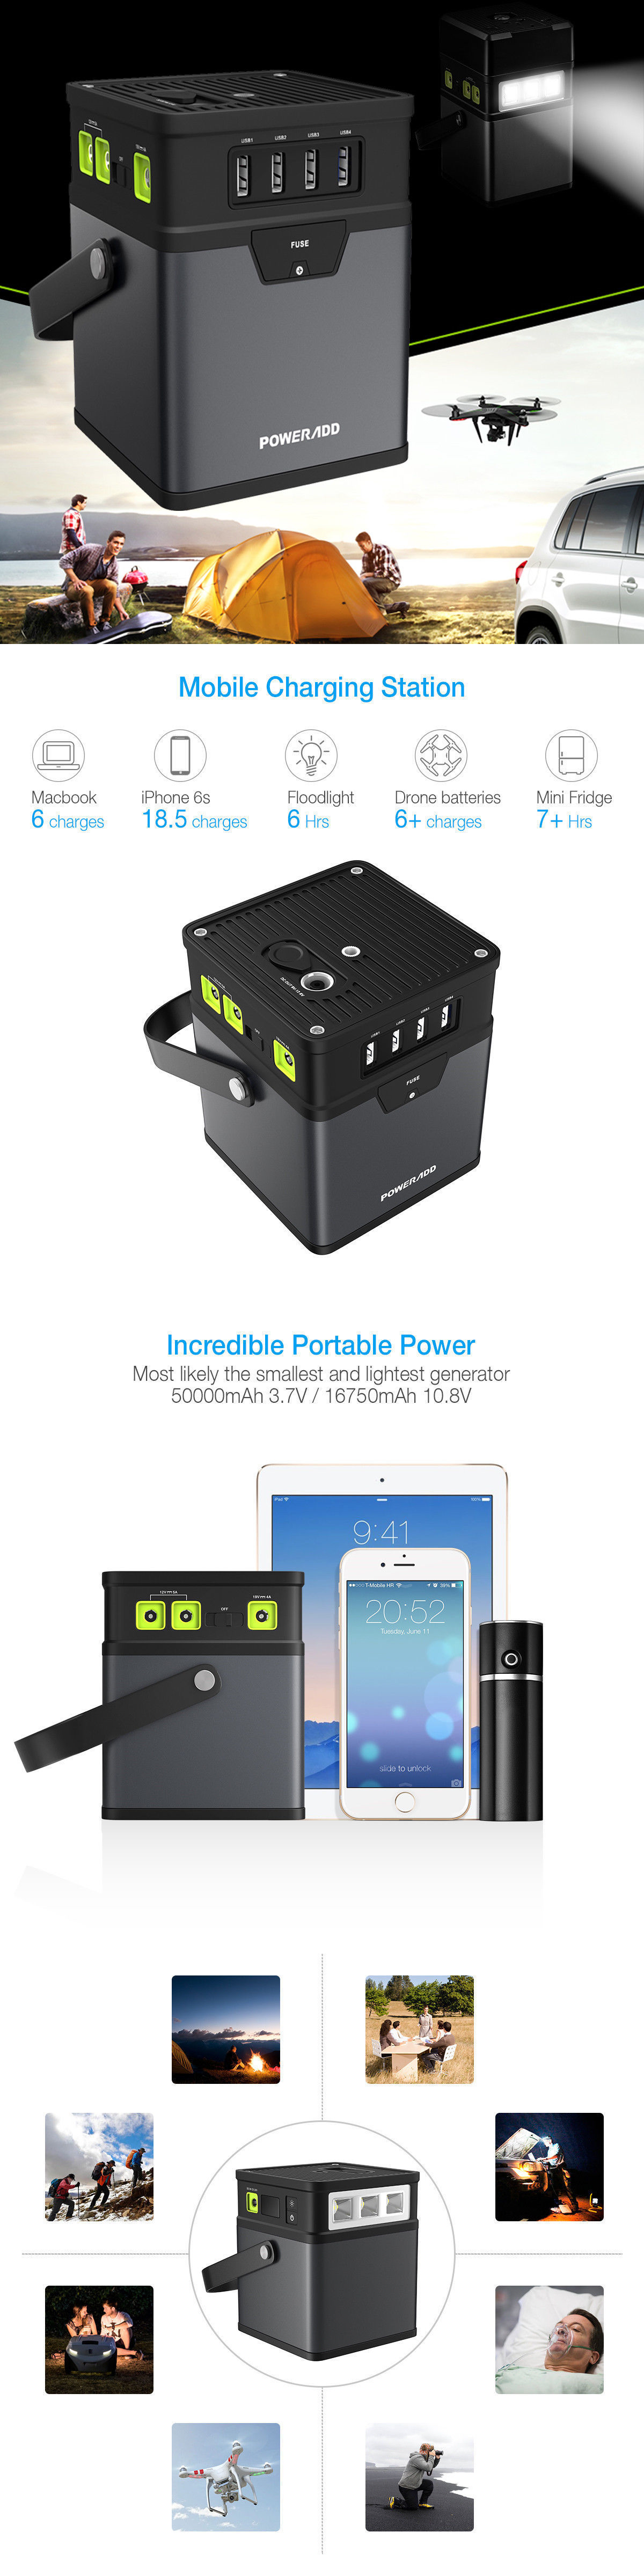 Battery Chargers Poweradd Mah Chargercenter Portable